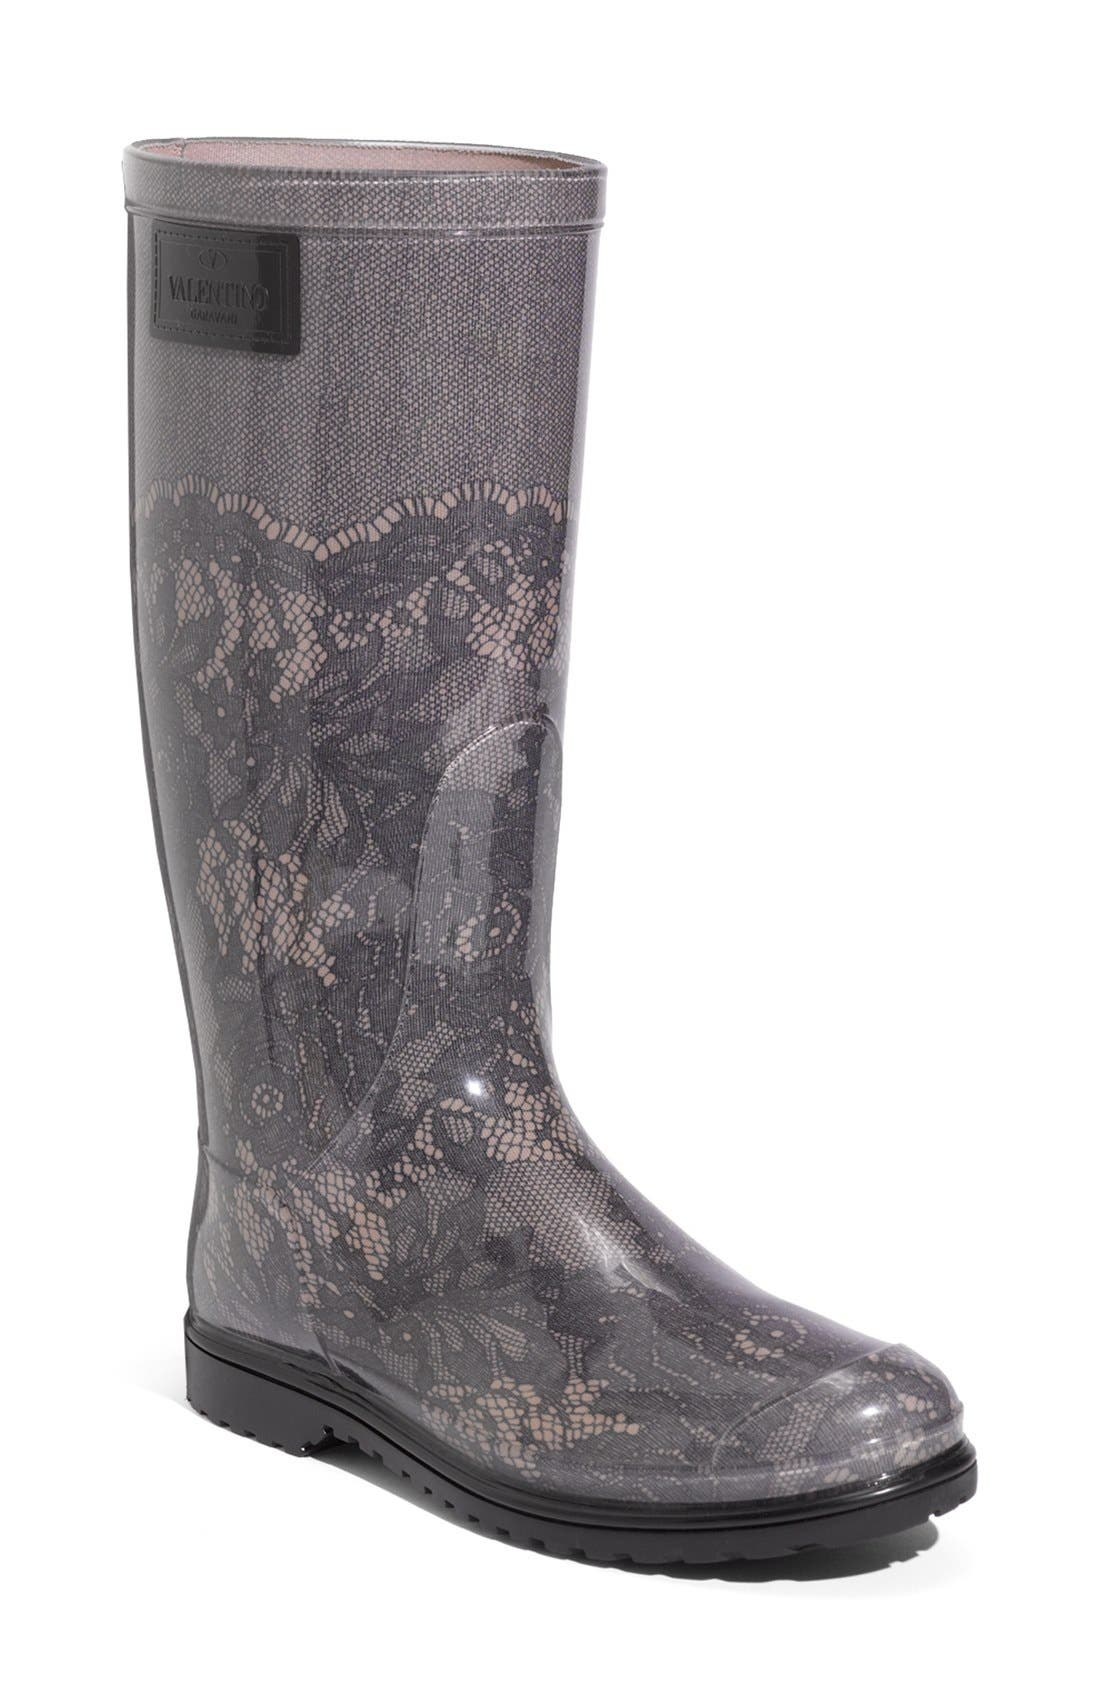 Alternate Image 1 Selected - VALENTINO GARAVANI Lace Print Rain Boot (Women)